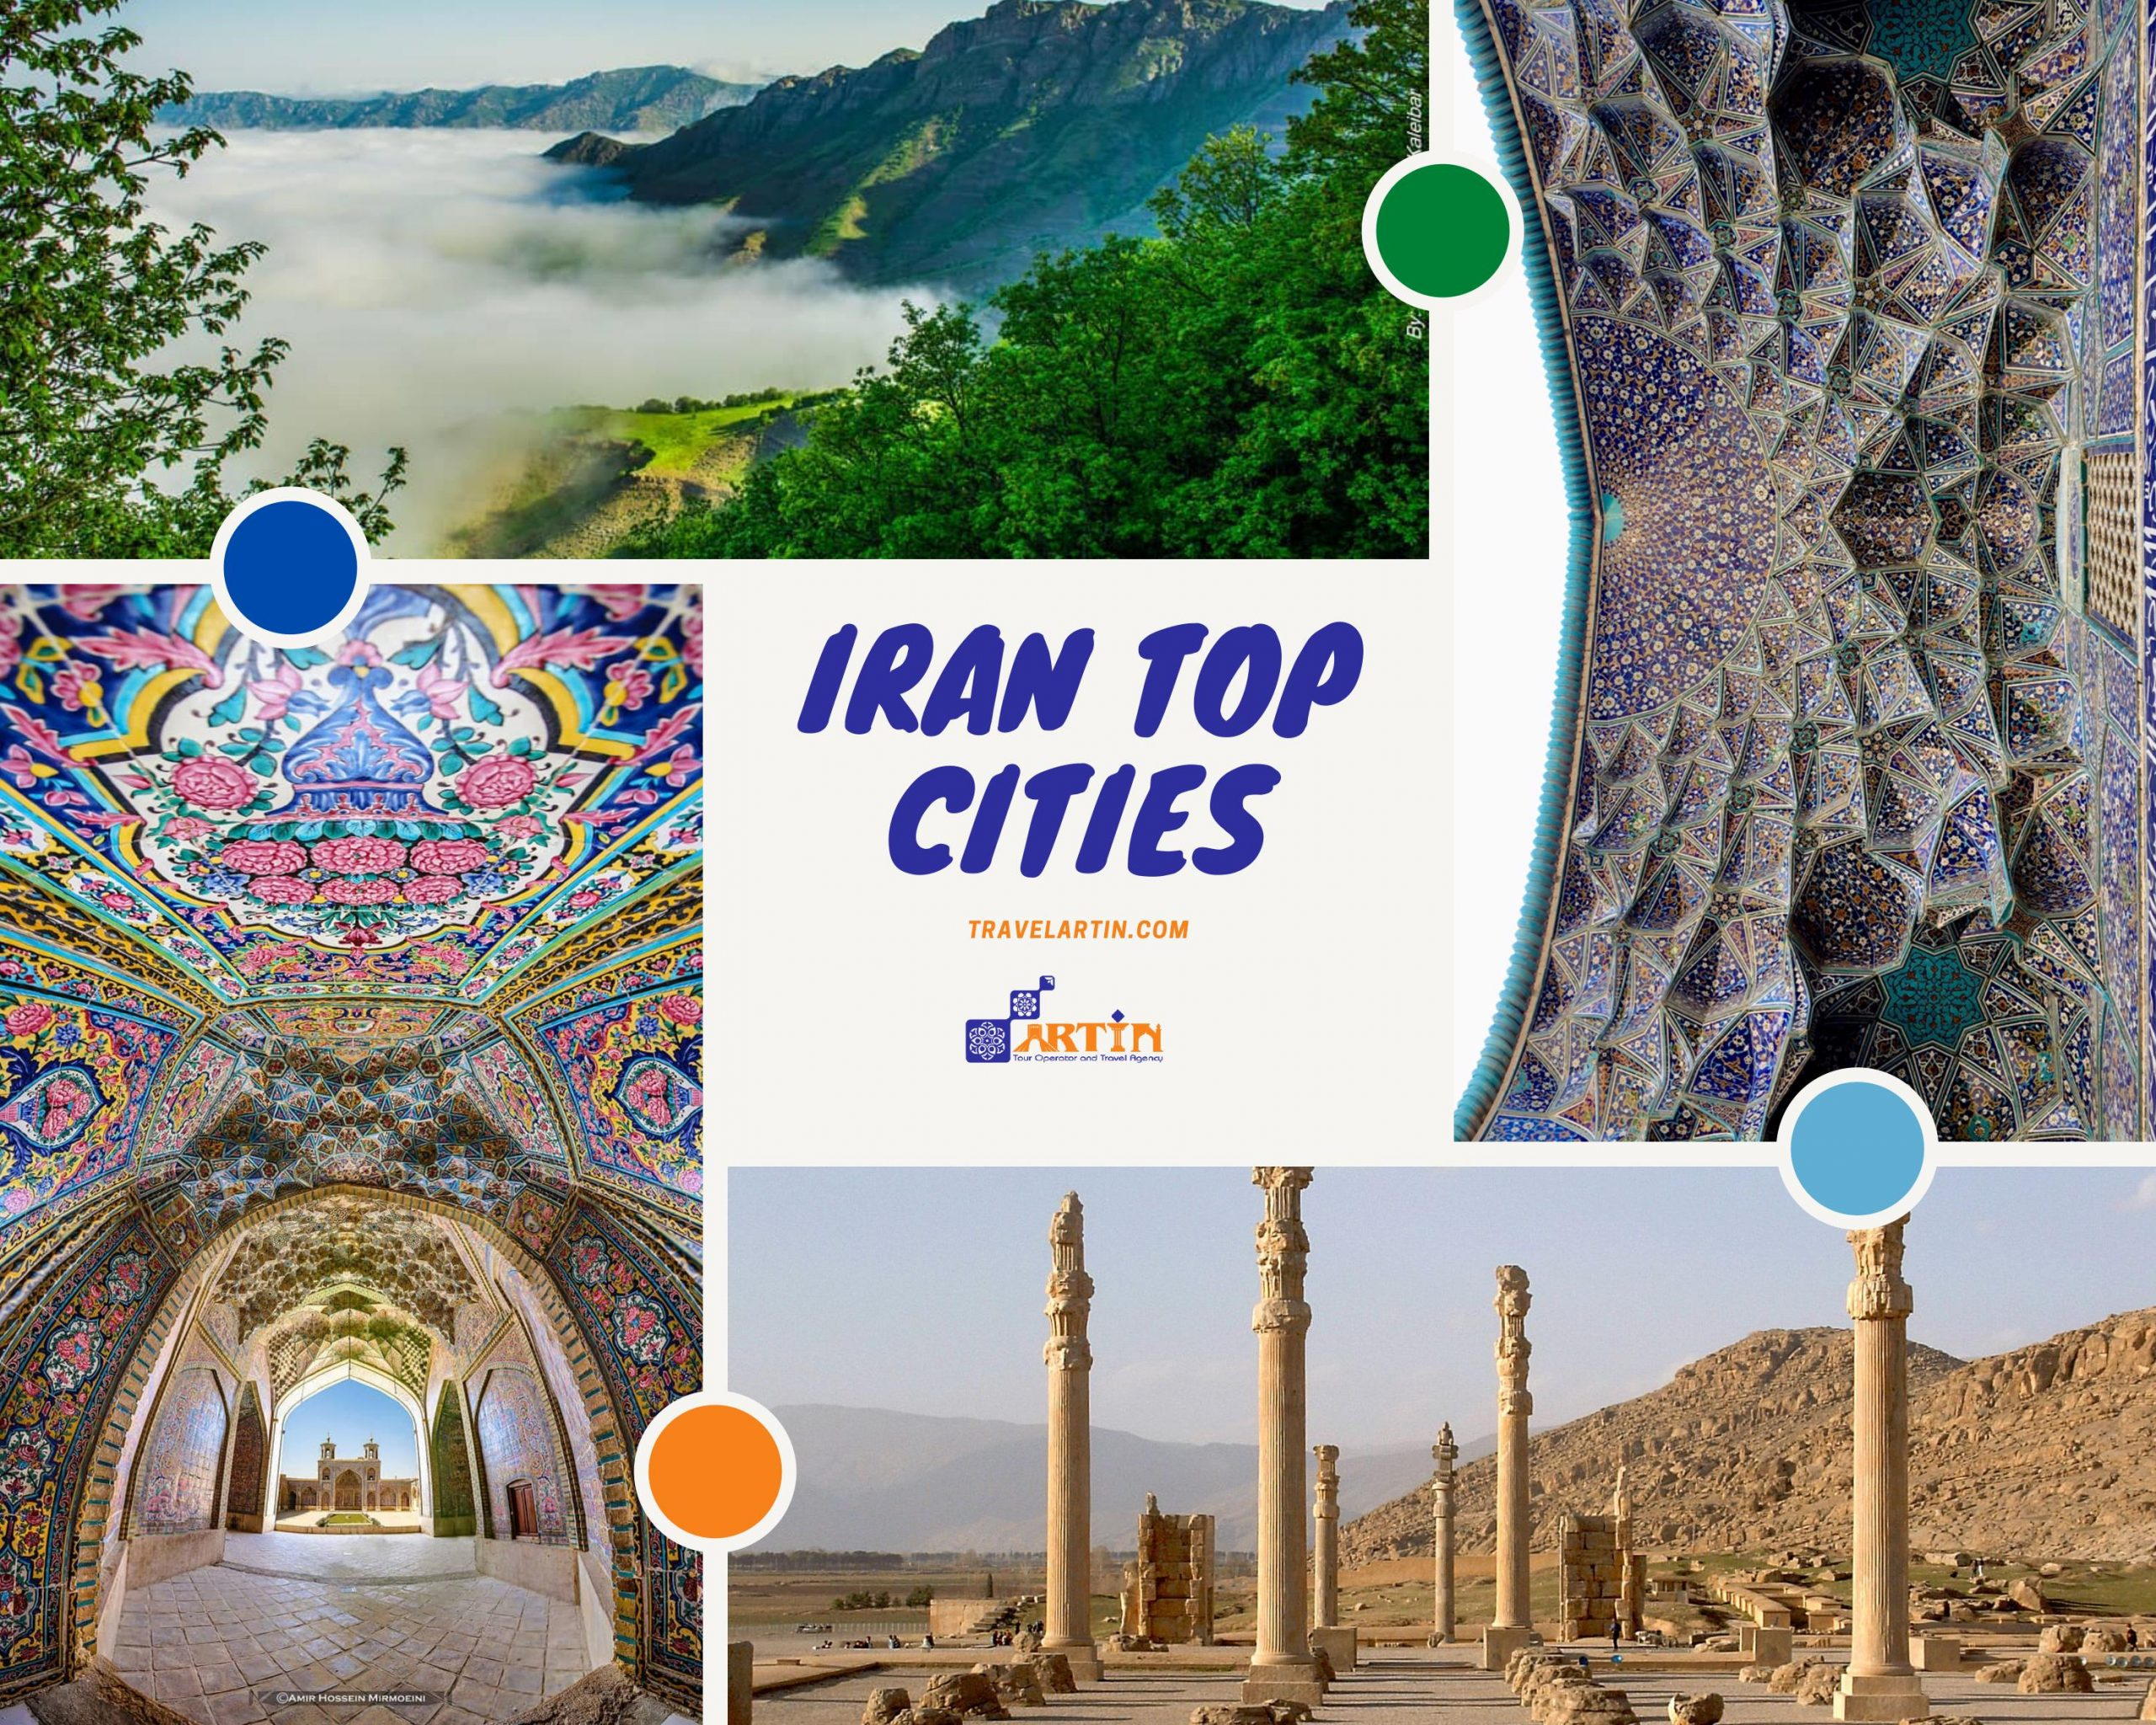 Iran top cities for travelers